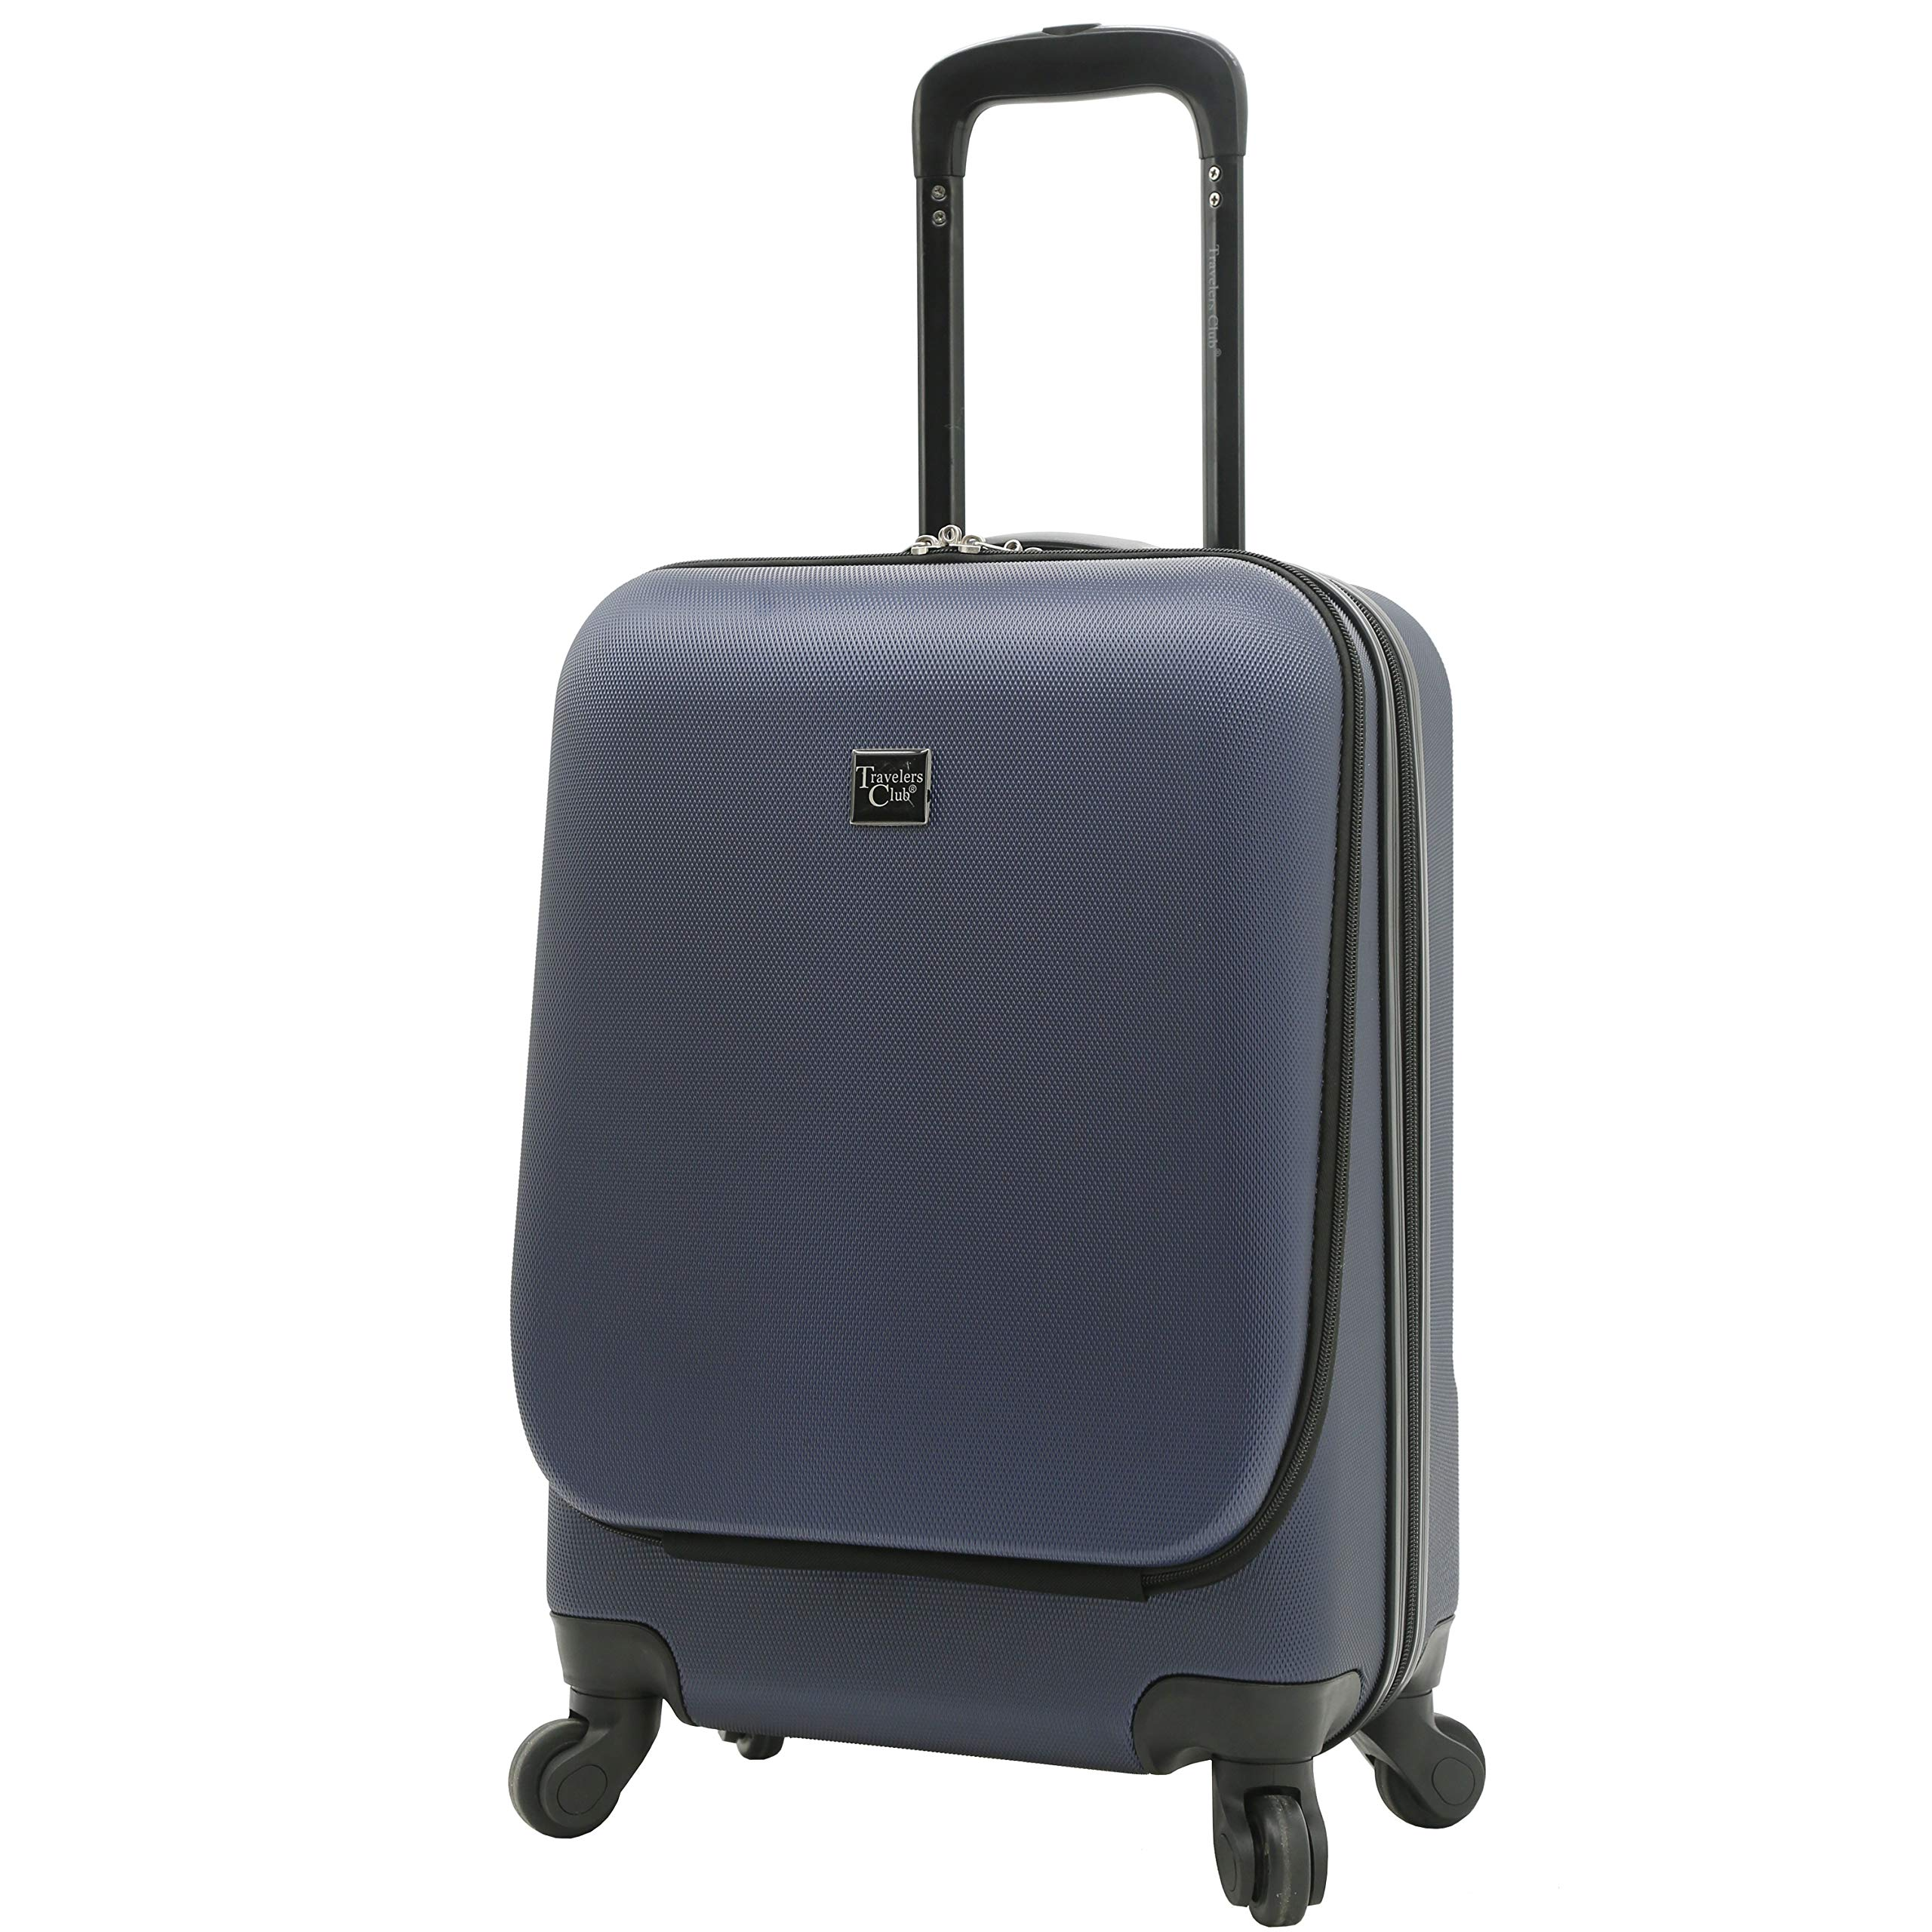 Travelers Club Laptop Carry On Hardside 4 Wheel Spinner